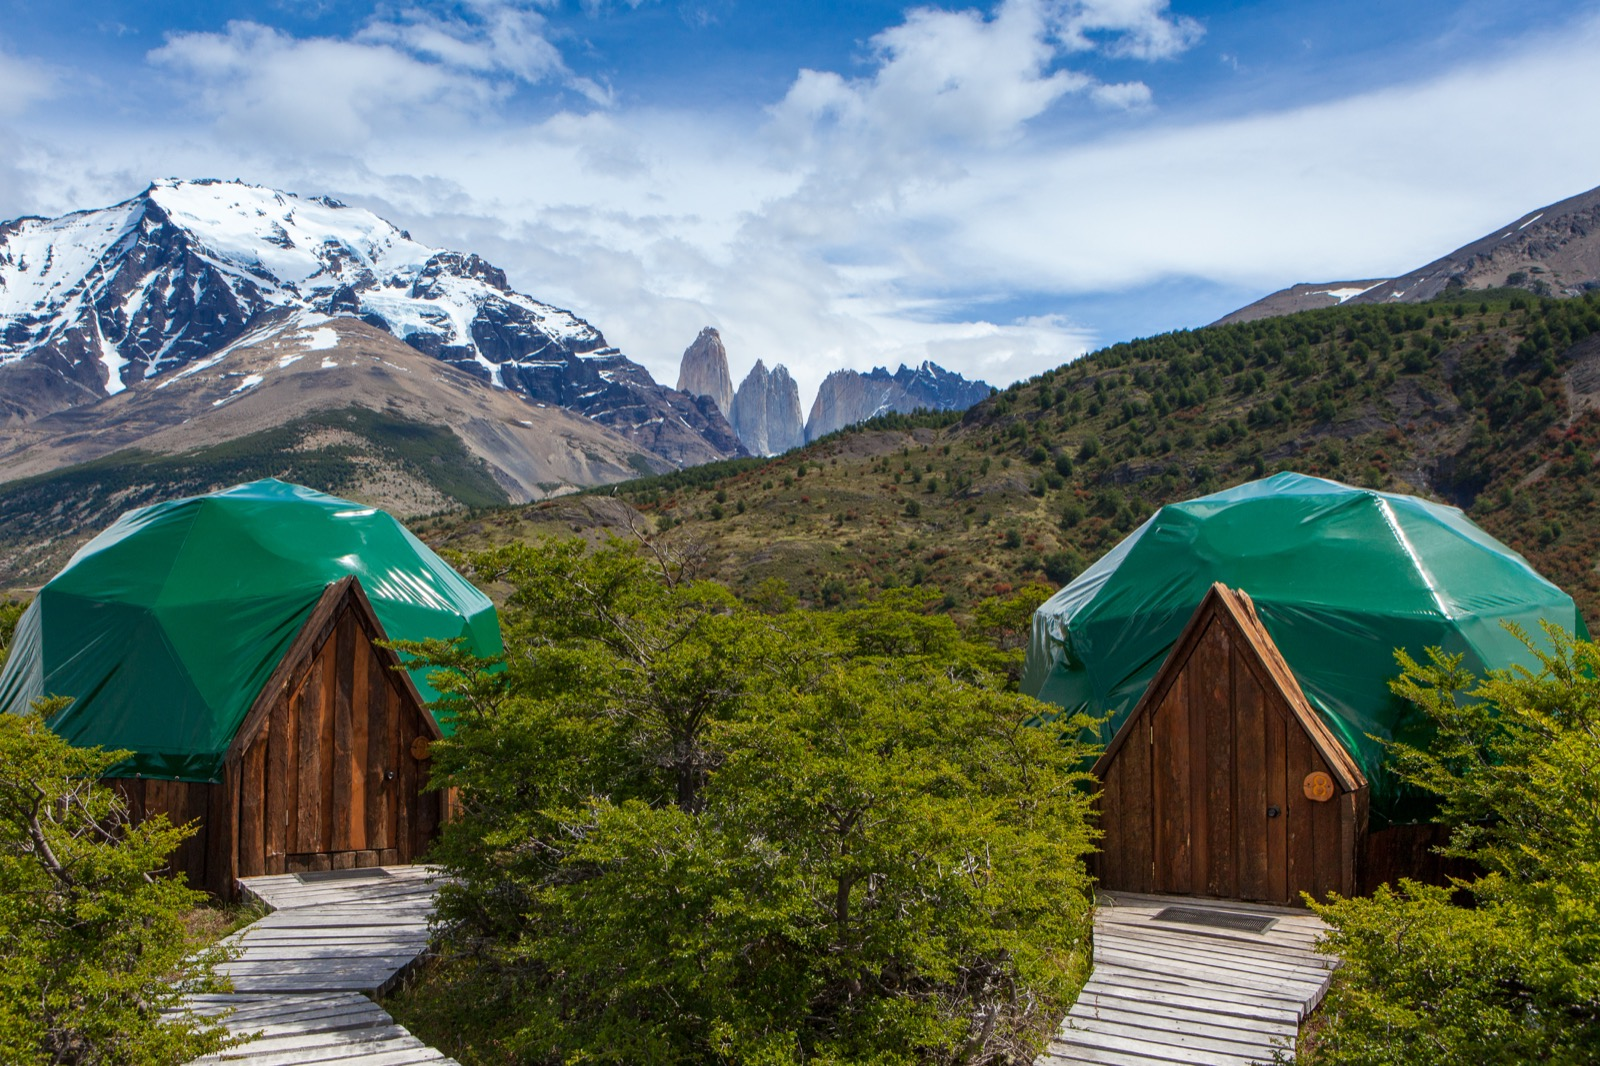 Arrival to EcoCamp Patagonia